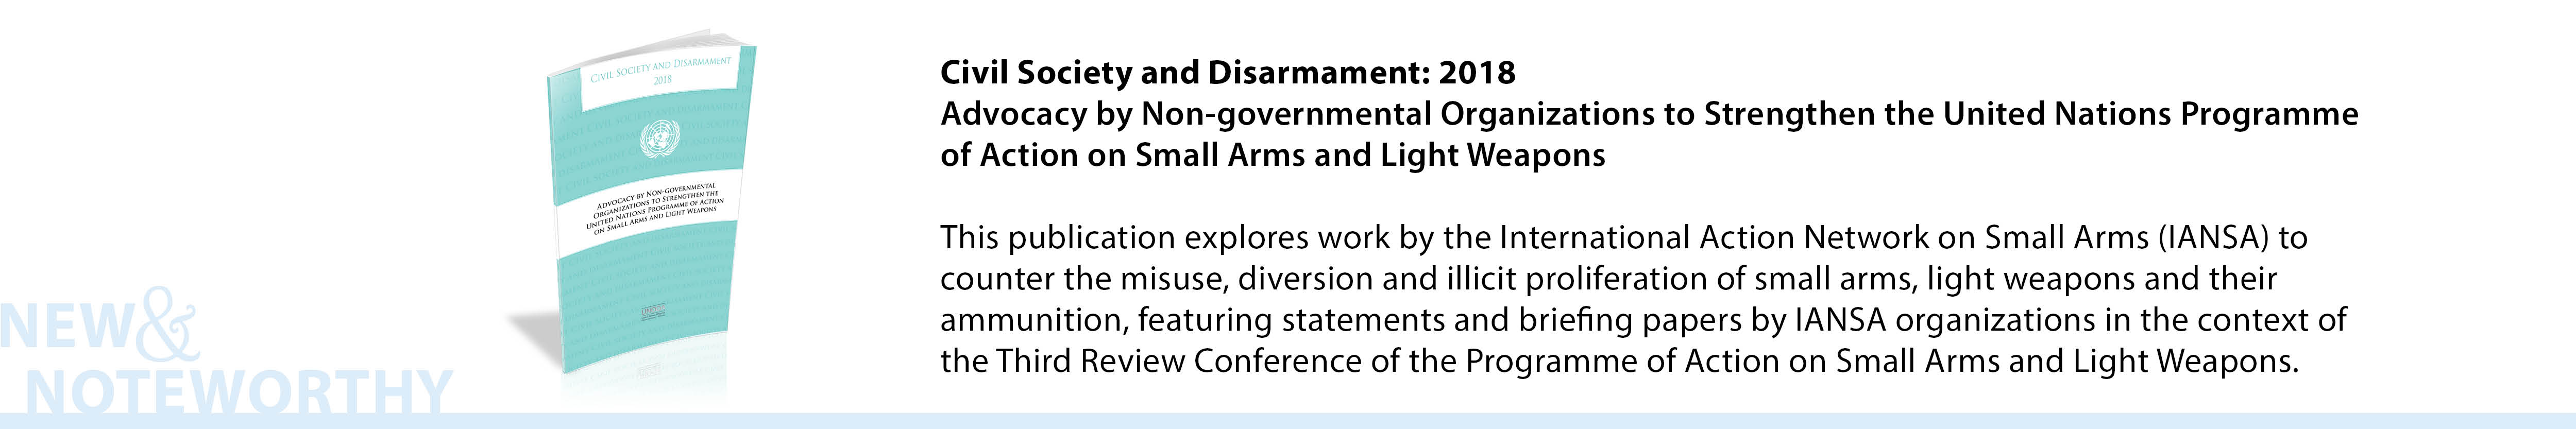 Advocacy by Non-governmental Organizations to Strengthen the United Nations Programme of Action on Small Arms and Light Weapons, Civil Society and Disarmament: 2018 - This publication explores work by the International Action Network on Small Arms (IANSA) to counter the misuse, diversion and illicit proliferation of small arms, light weapons and their ammunition, featuring statements and briefing papers by IANSA organizations in the context of the Third Review Conference of the Programme of Action on Small Arms and Light Weapons.